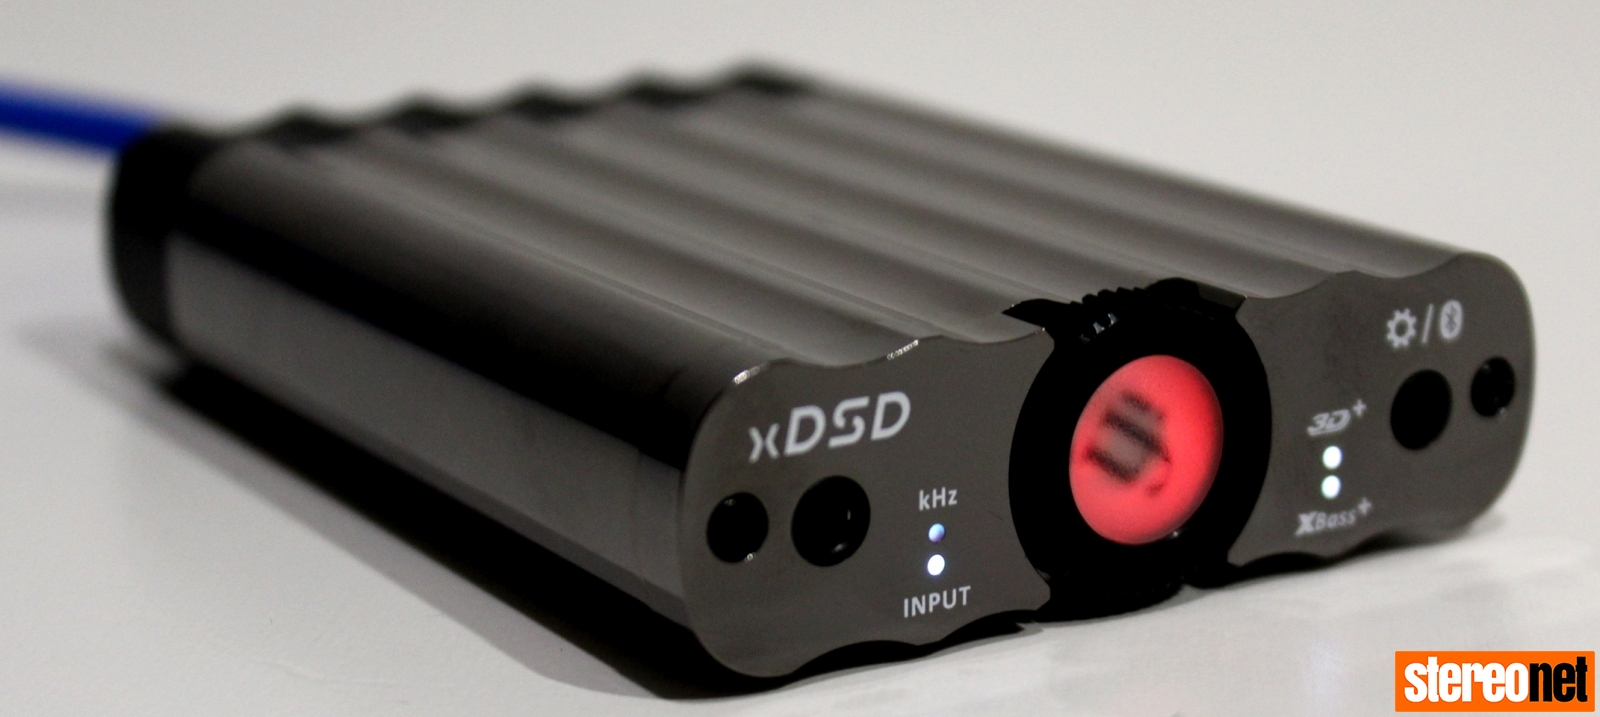 iFi xDSD red dial